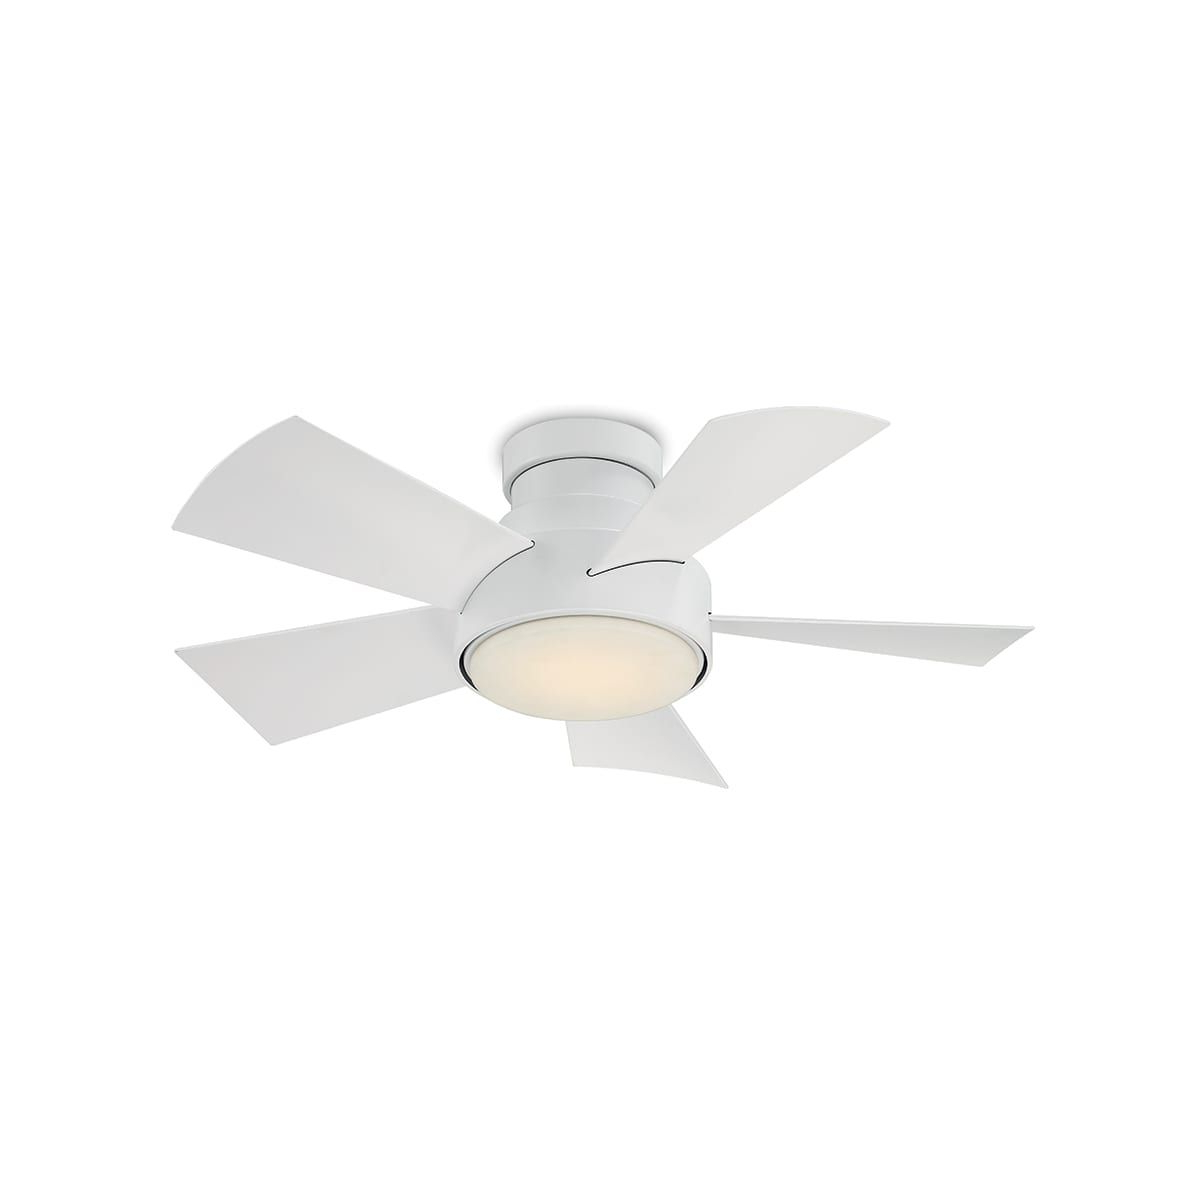 Eliora 5 Blade Ceiling Fans Inside Latest Minkaaire Supra 32 In 2019 Lake House Ceiling Fan Blades (Gallery 14 of 20)